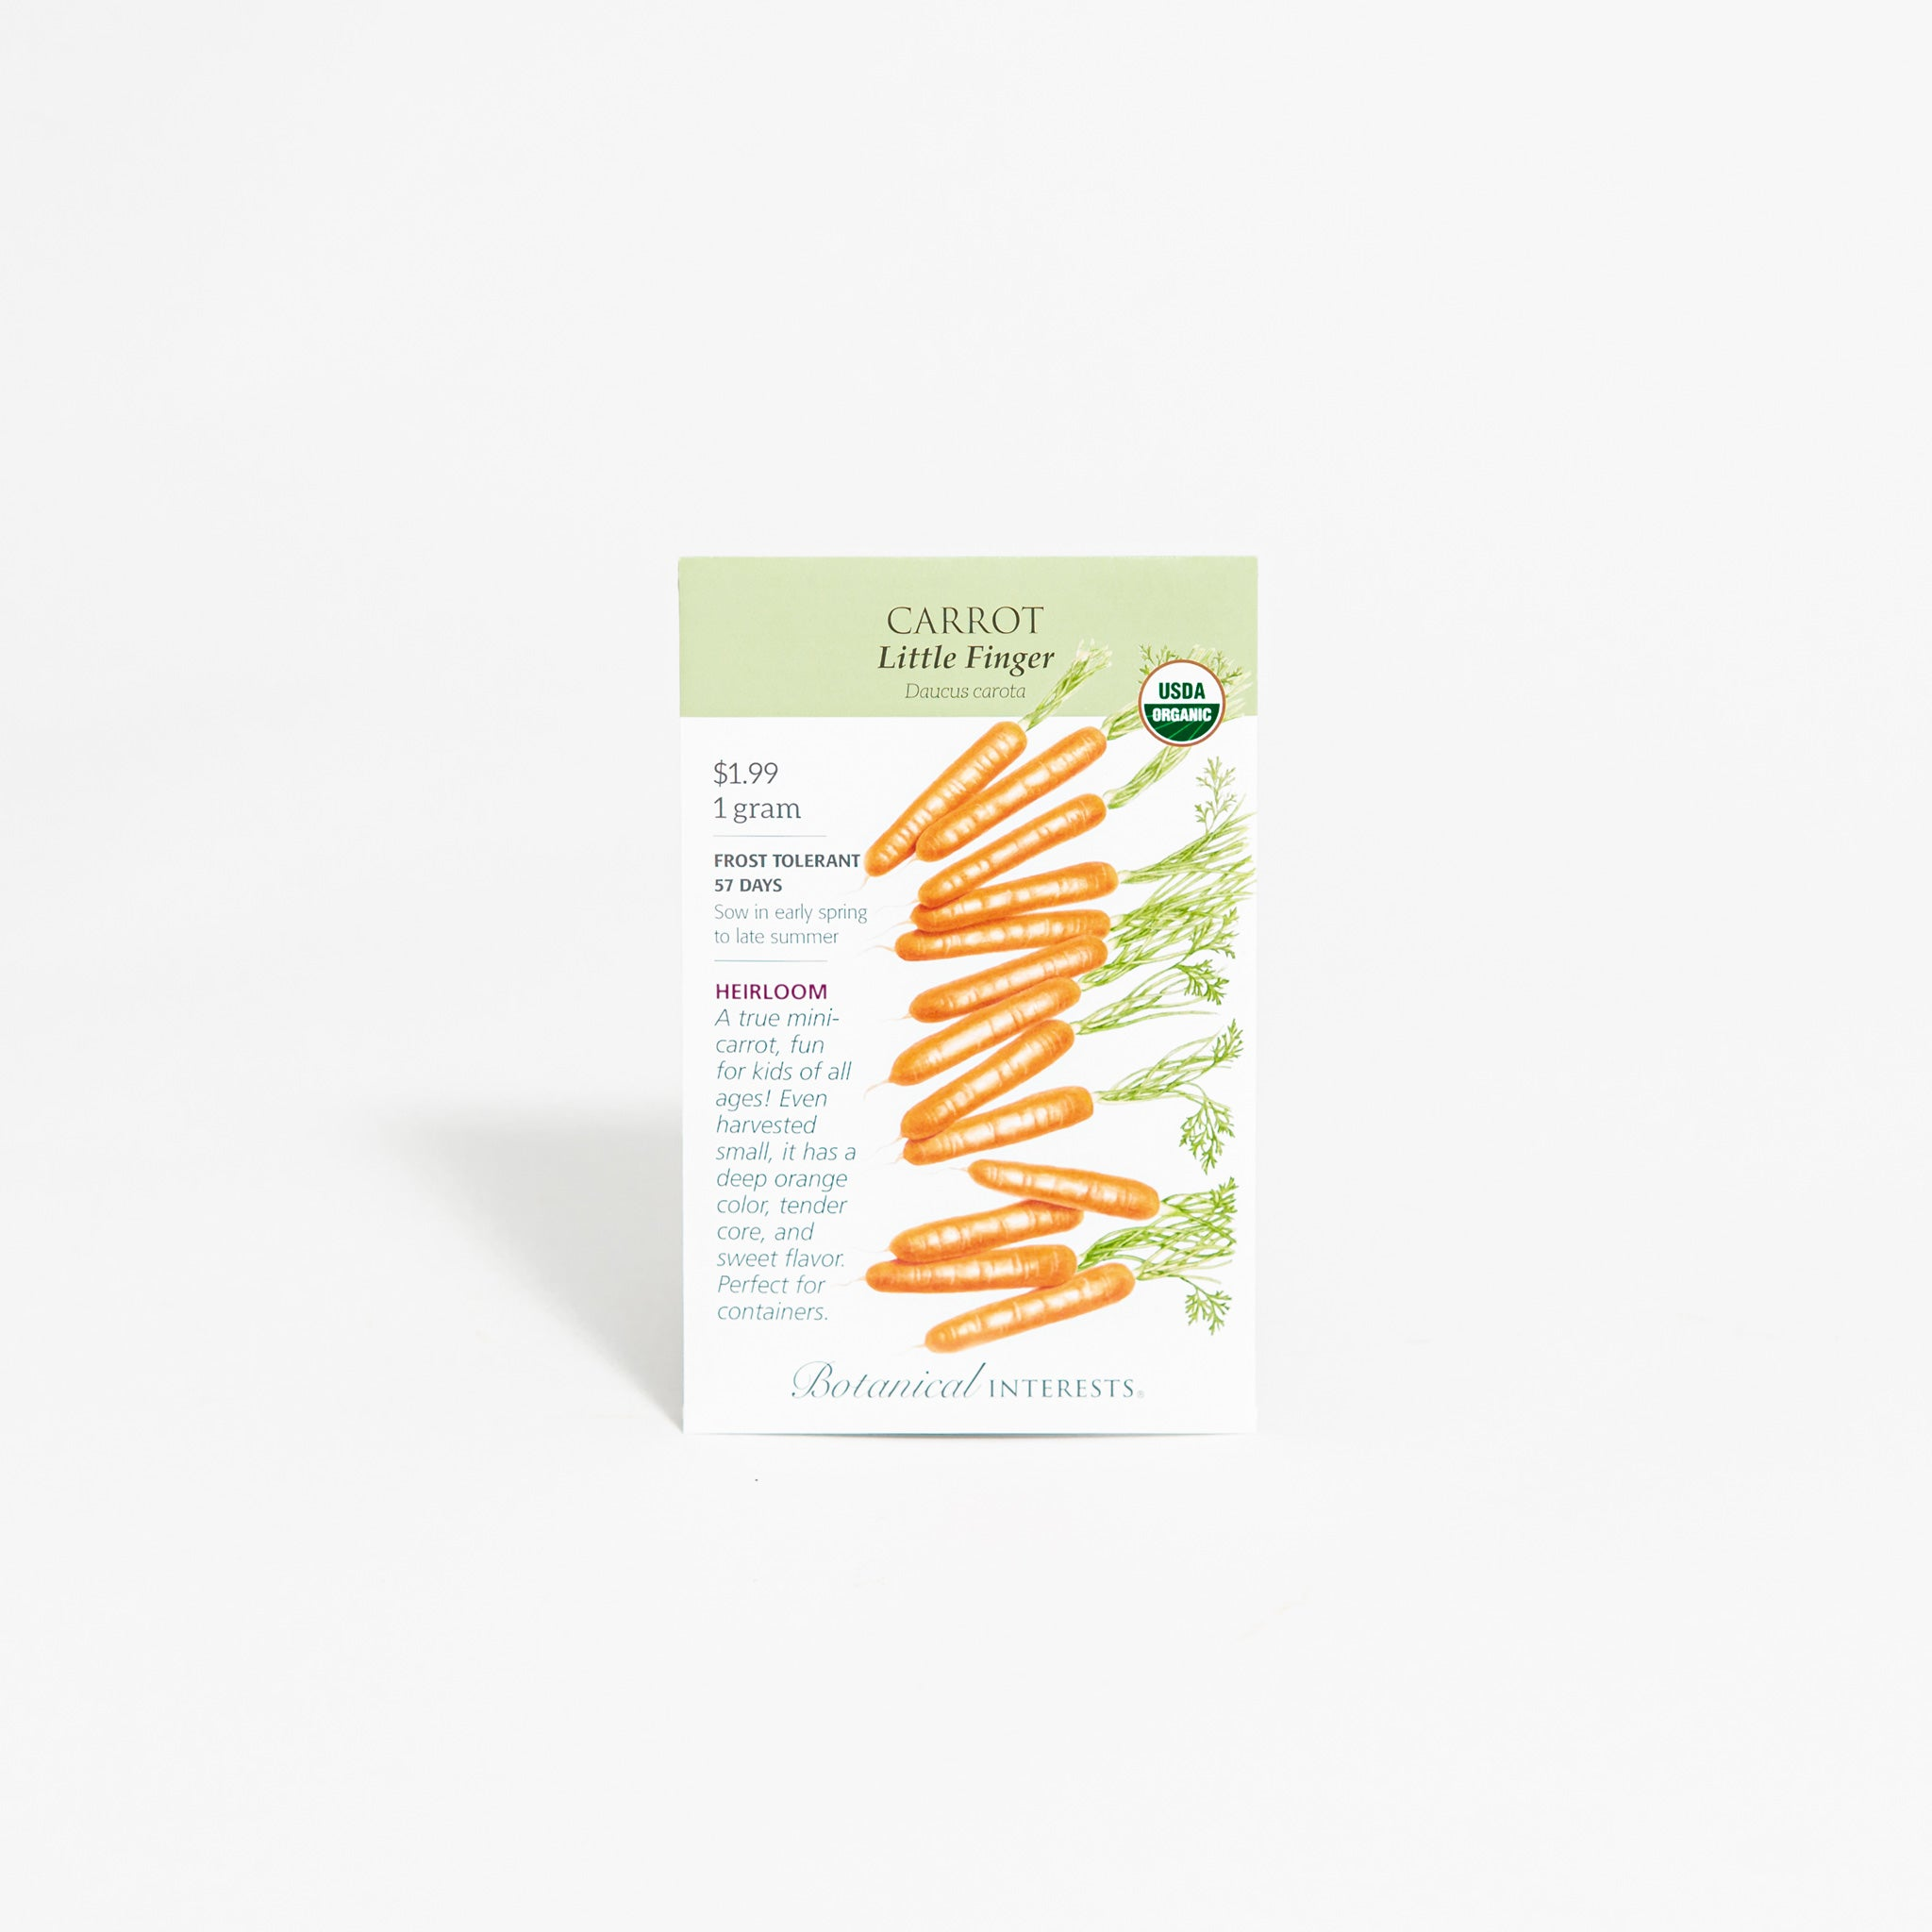 'Little Finger' Baby Carrot Seed Packet